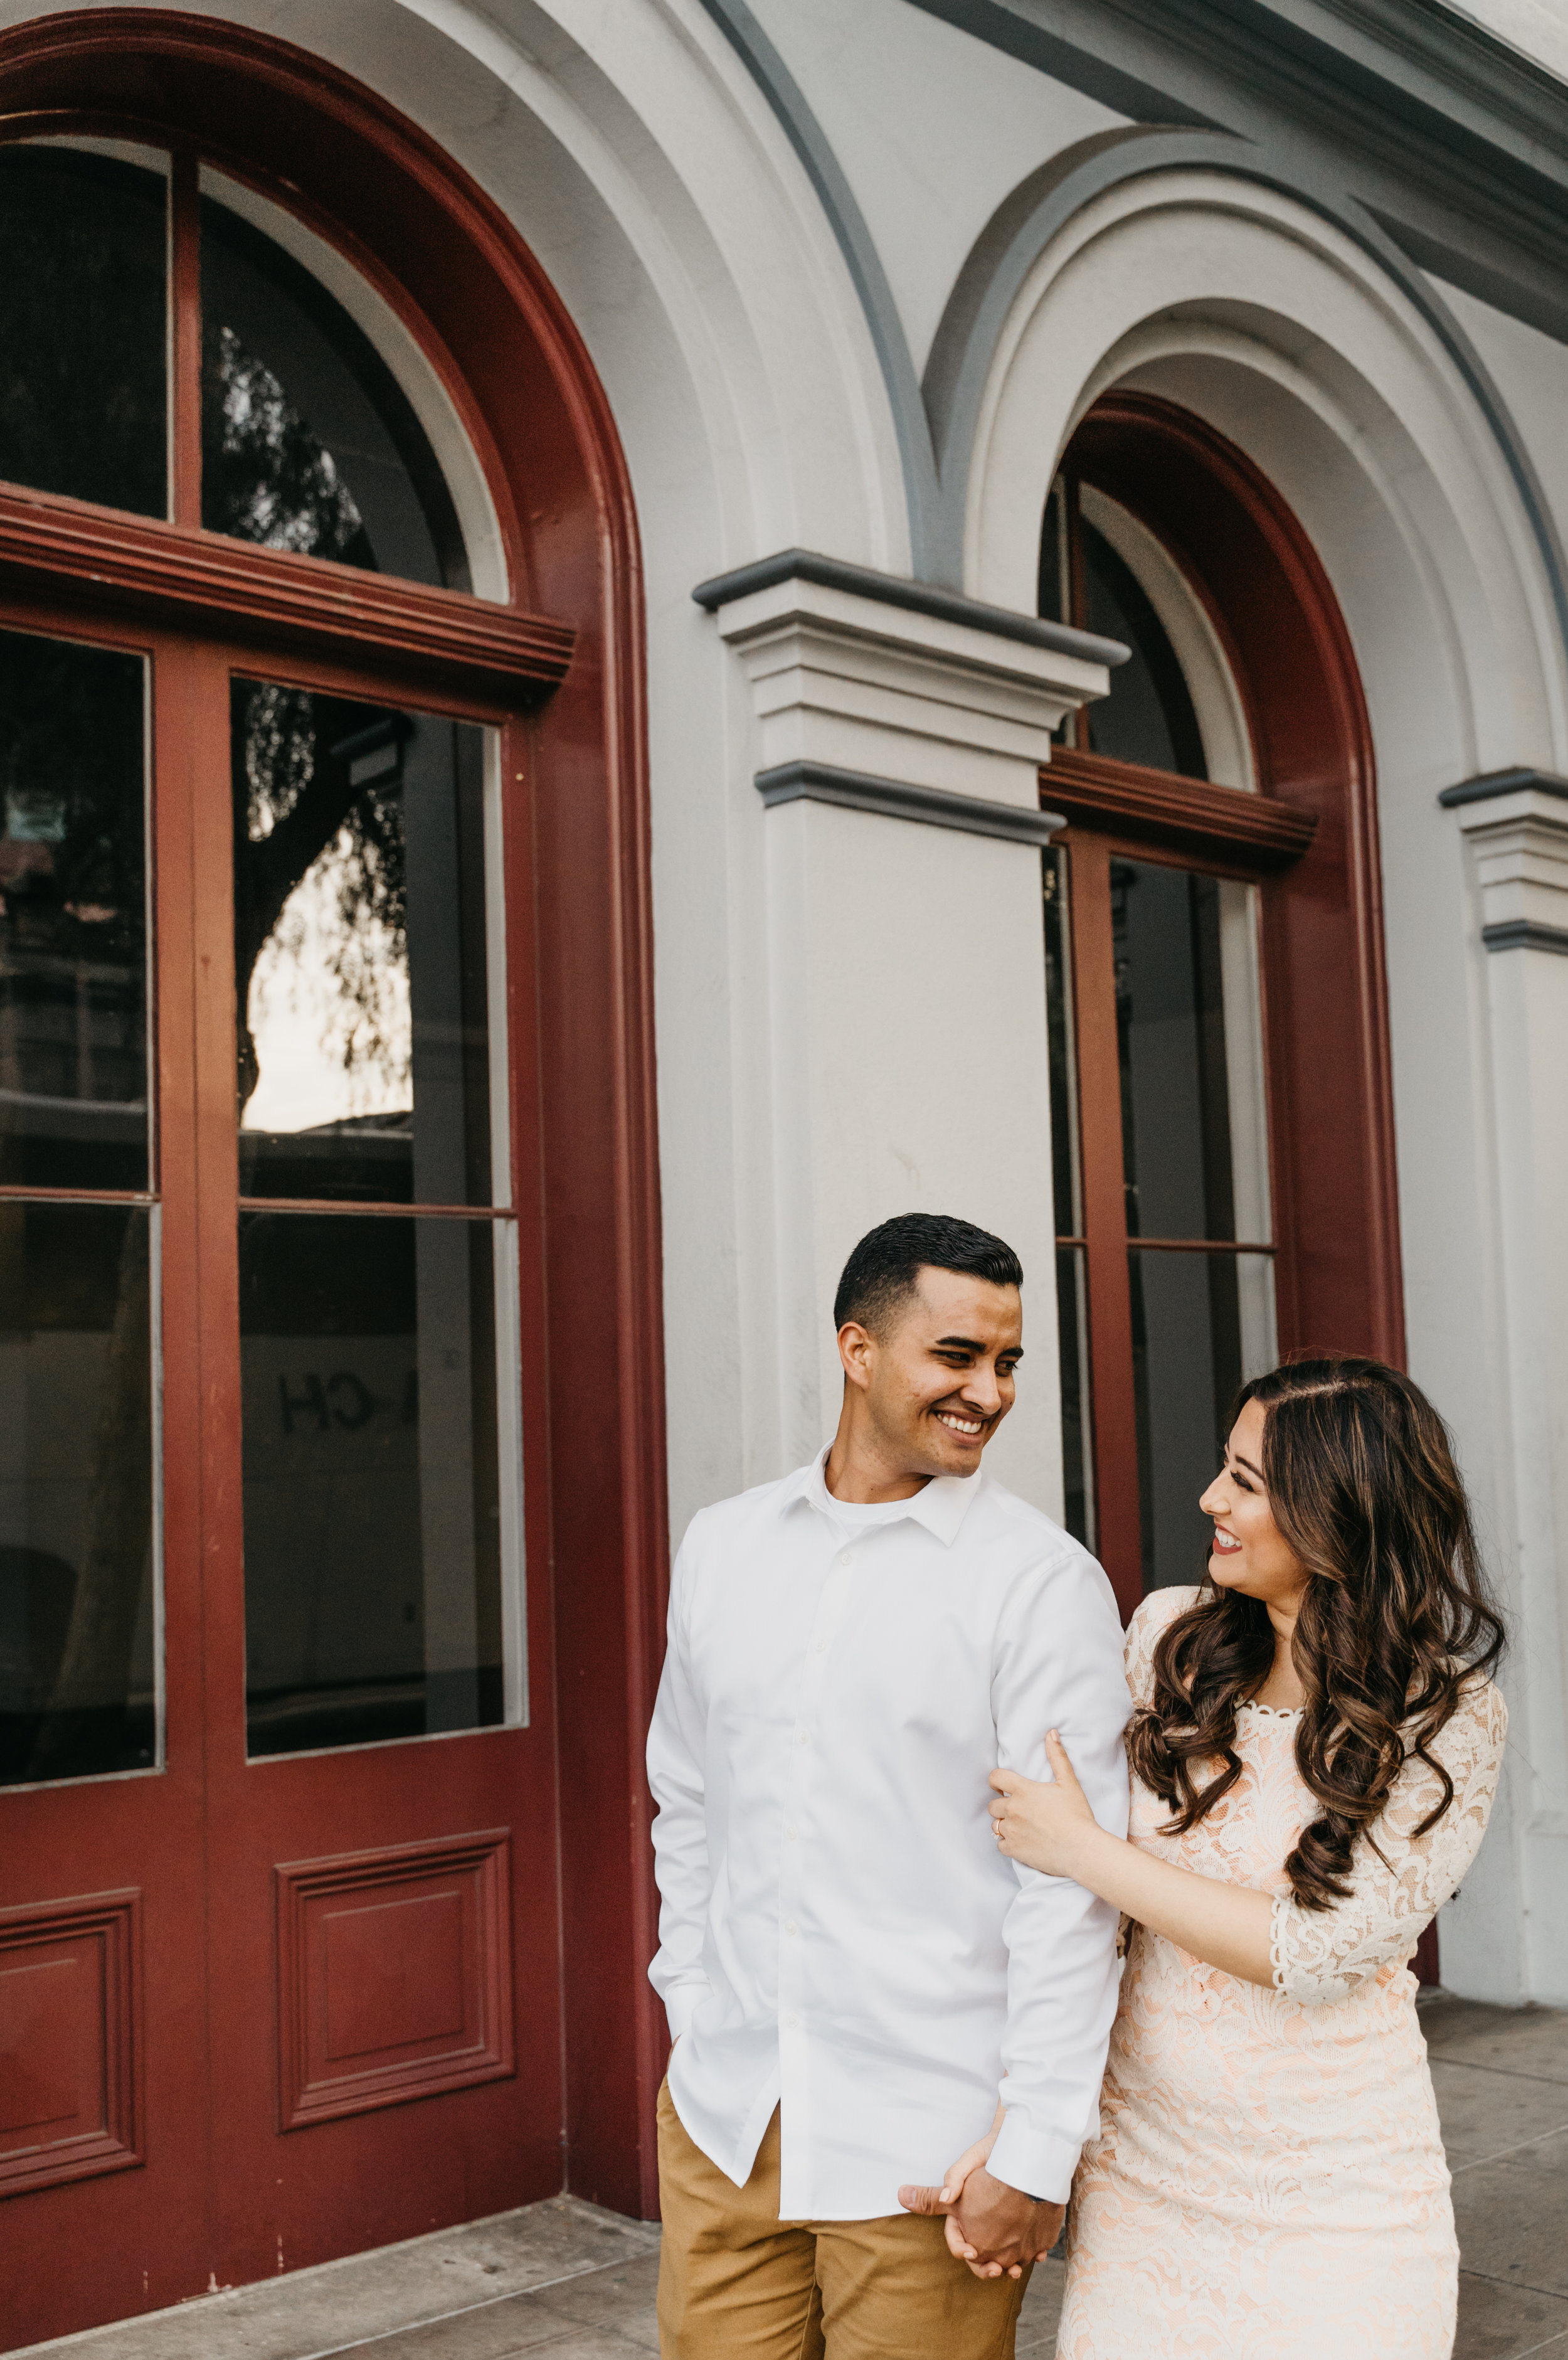 Destination and Elopement Wedding Photographer and Videographer serving Southern California (SoCal, Orange County, Los Angeles) and beyond